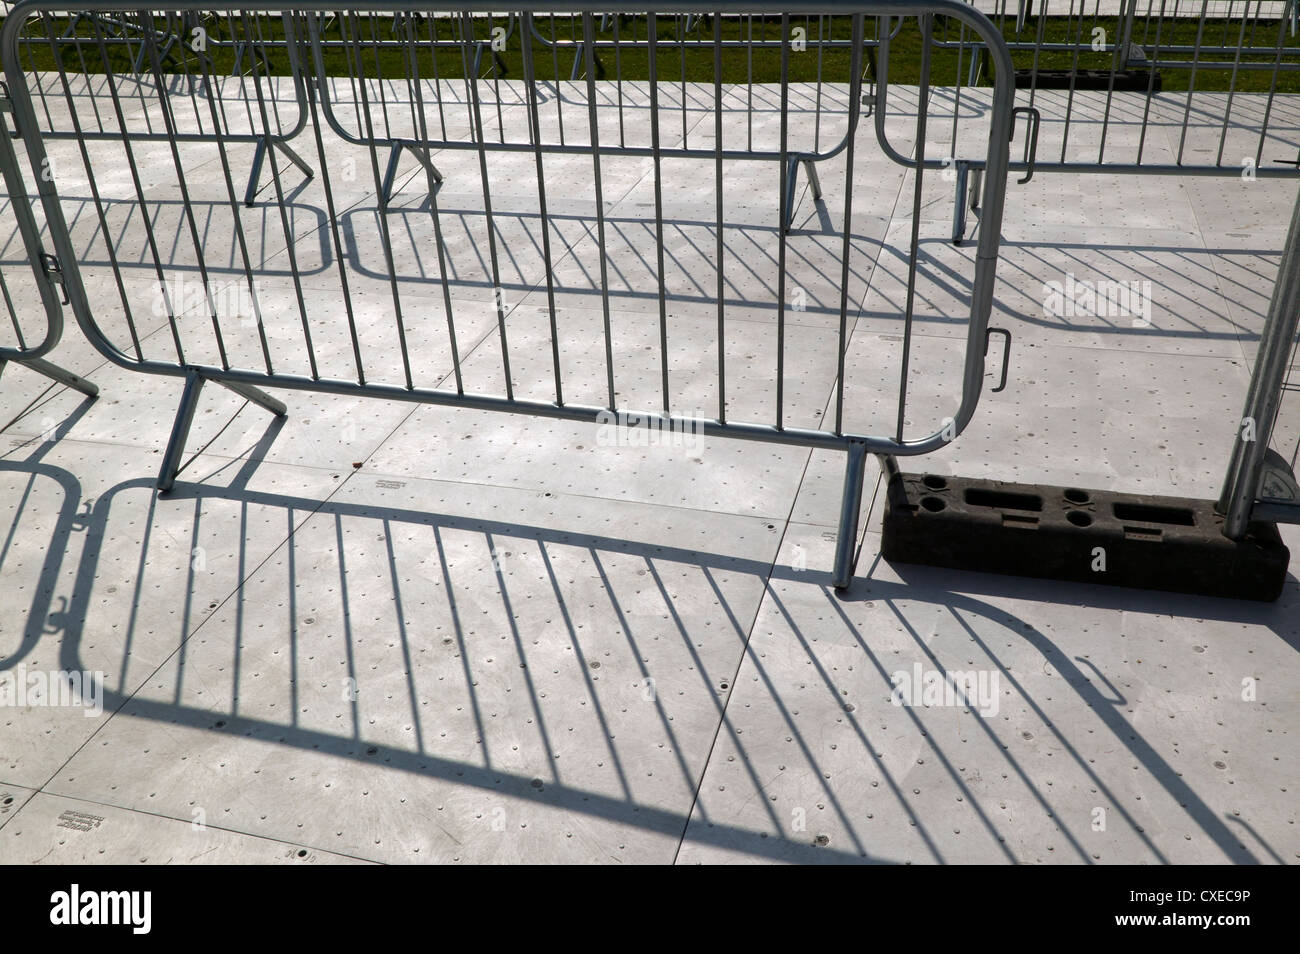 Temporary Flooring And Railings On The Approach To A Temporary Pedestrian  Bridge Over The A2, For The London 2012 Olympics